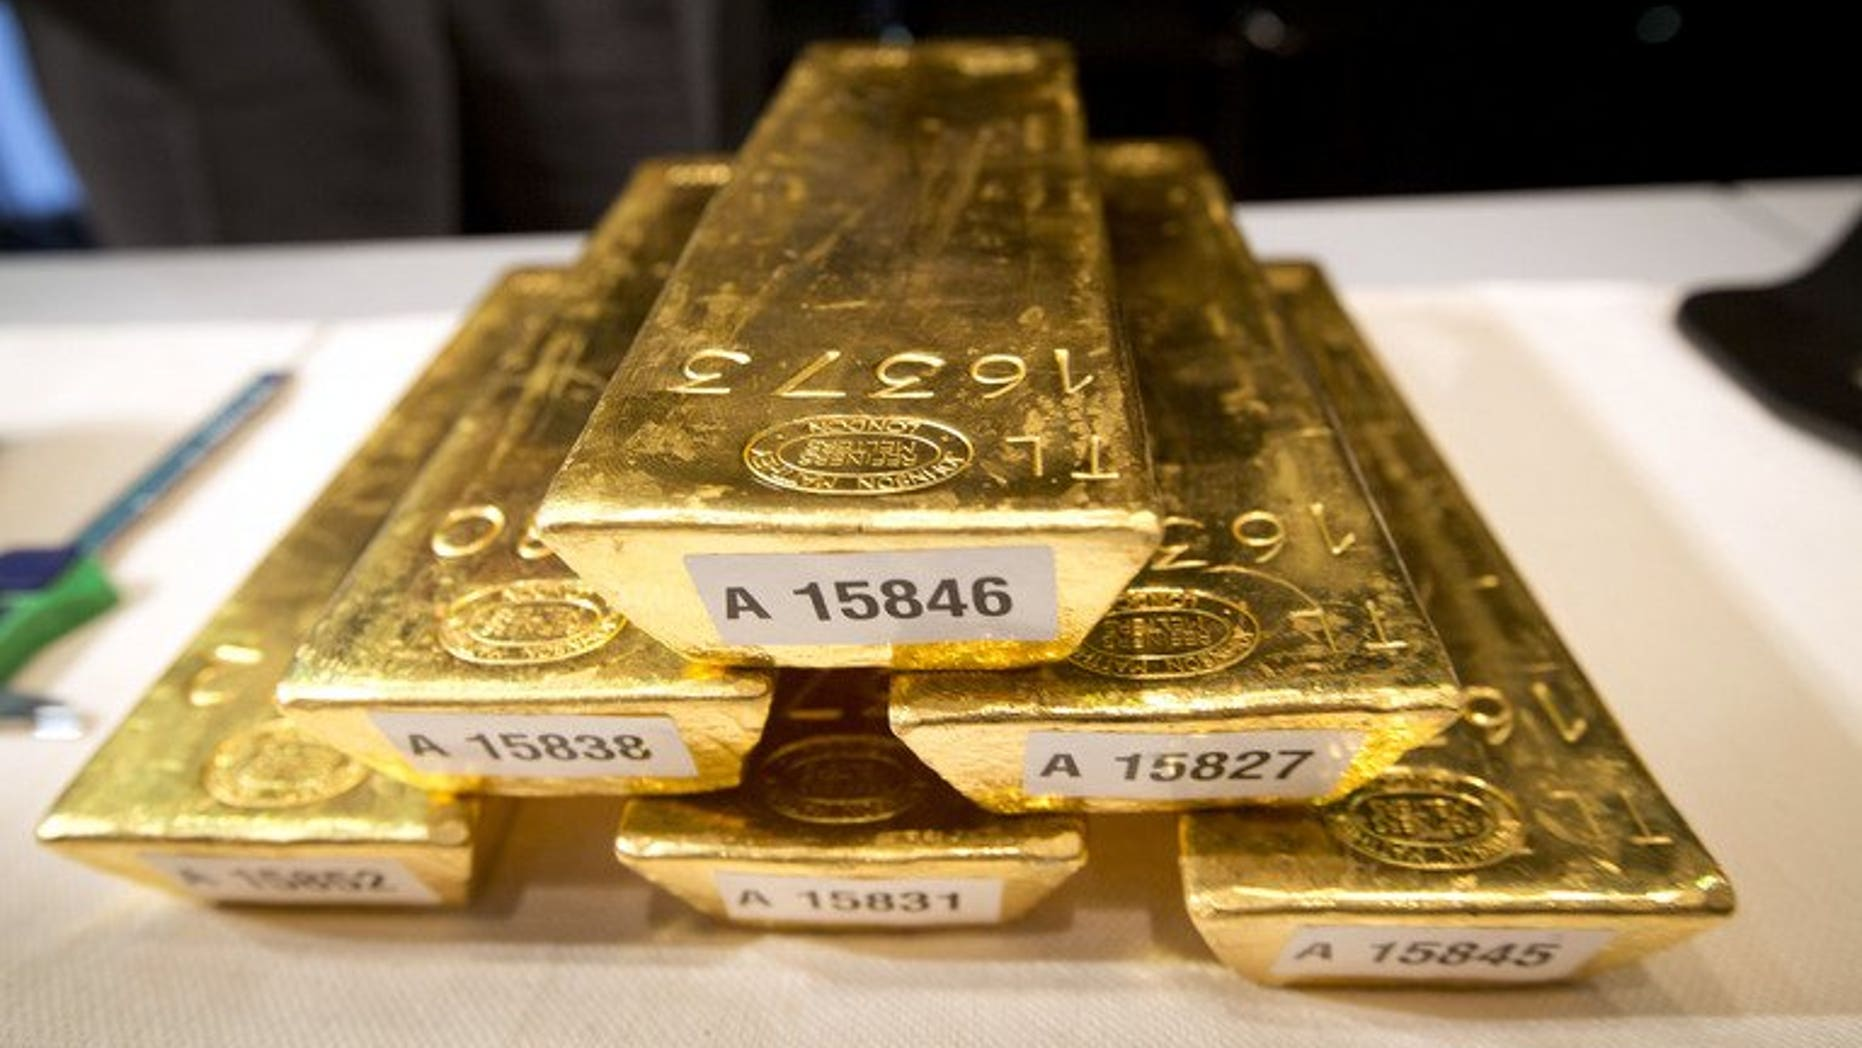 Bars of gold at a press conference at the German Federal Bank in Frankfurt, Germany, on January 16. The world's biggest gold producer, the Canadian firm Barrick Gold, is to sell three mines in Australia to South African competitor Gold Fields for $300 million, the companies said.